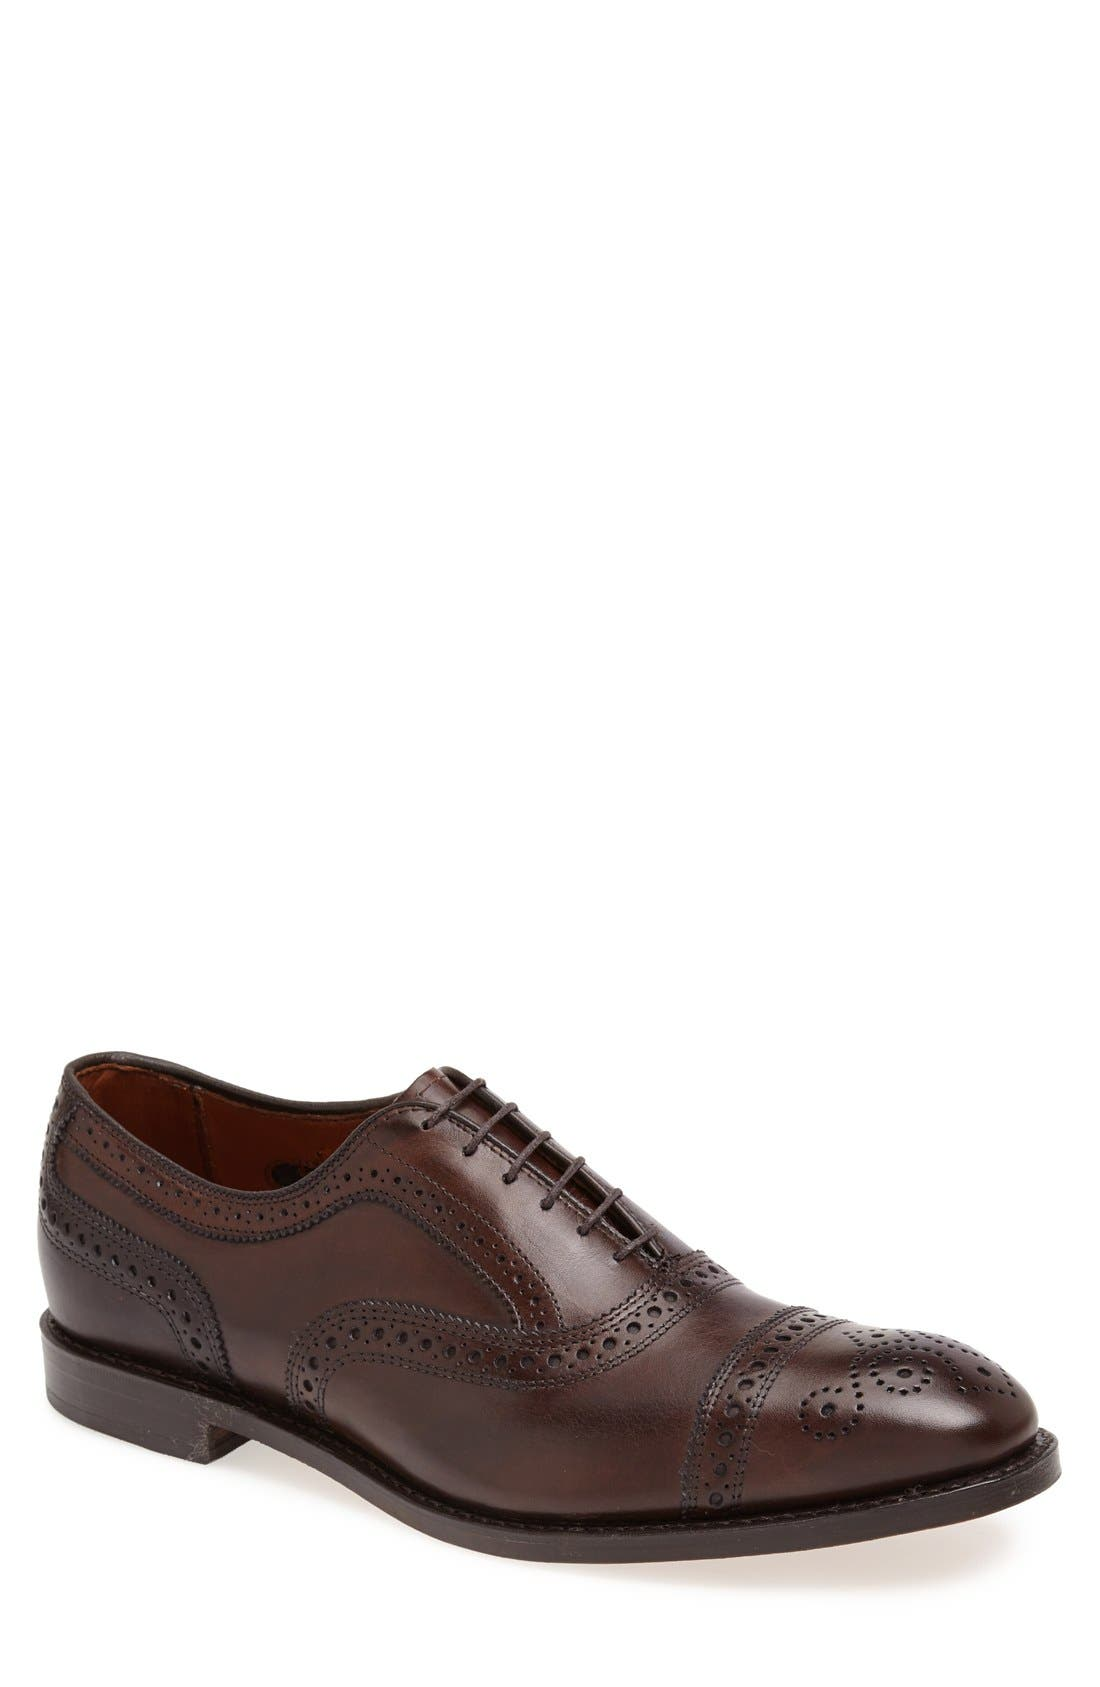 Allen Edmonds 'Strand' Cap Toe Oxford (Men)